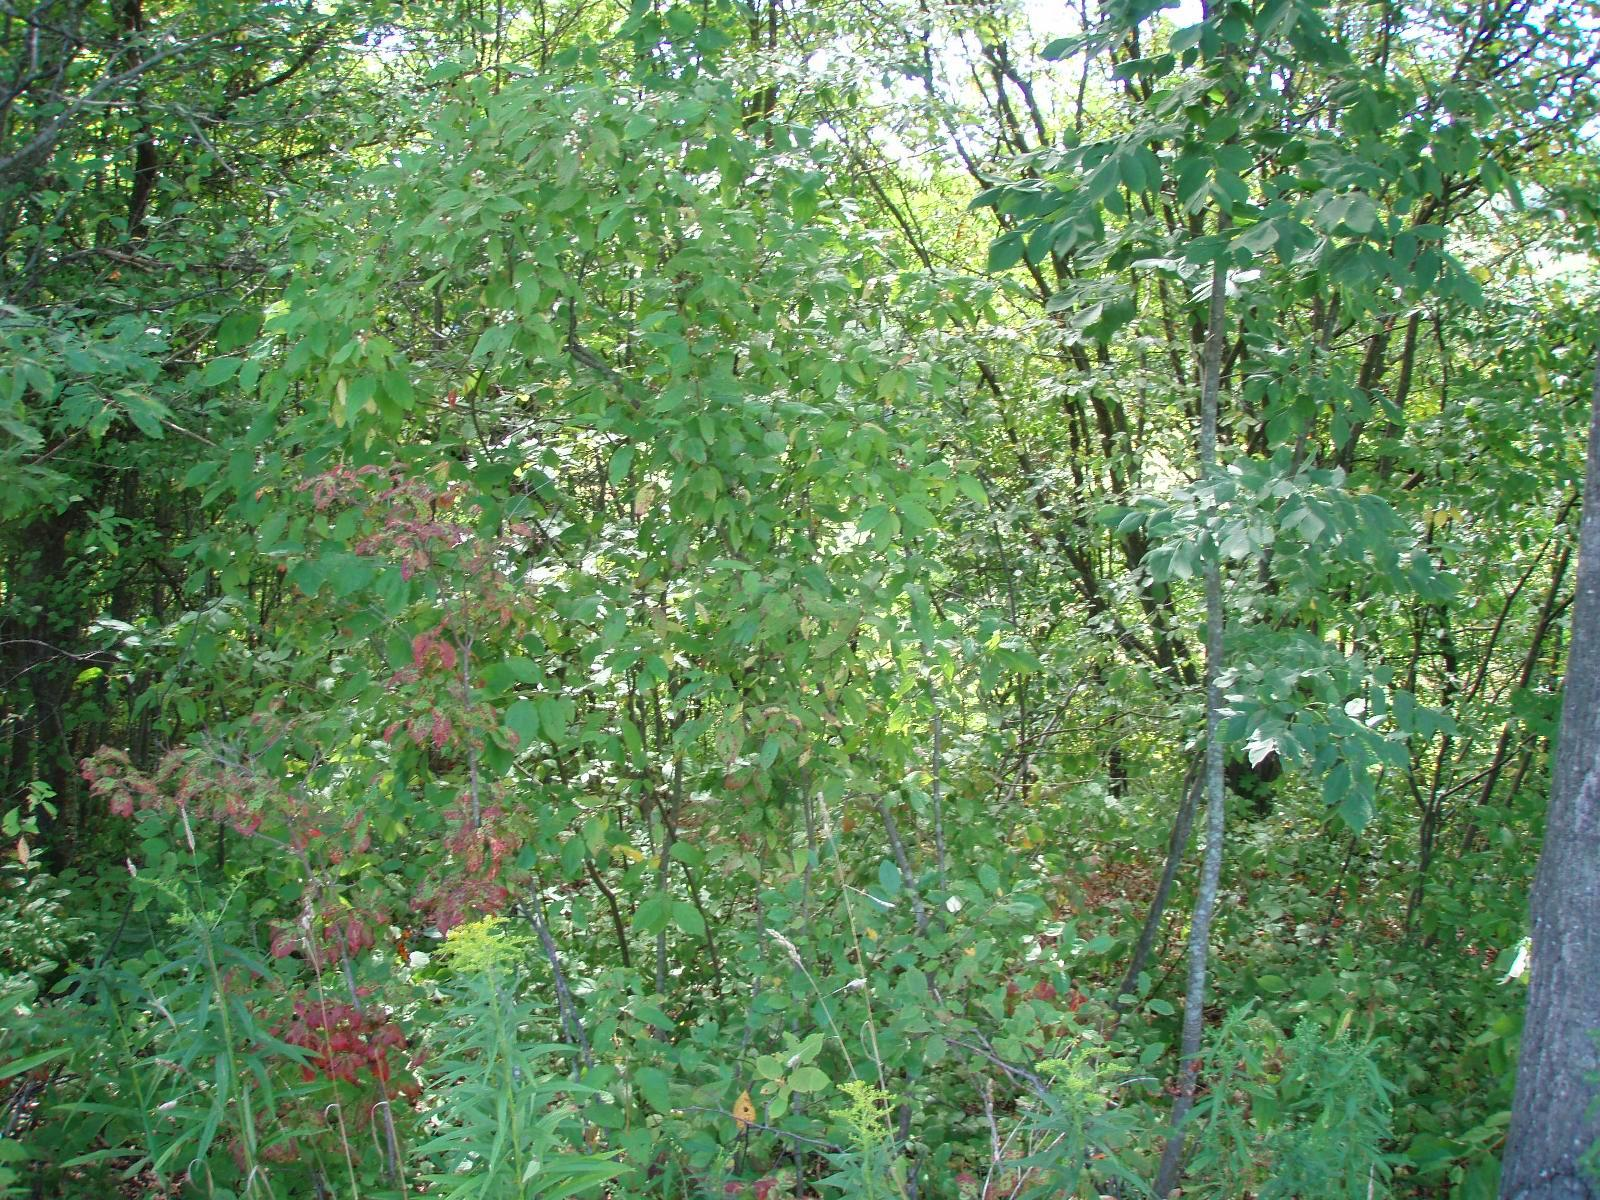 Overgrown areas benefit from tree and shrub removal, selective tree felling, crop tree release, and the establishment of native shrubs and trees.